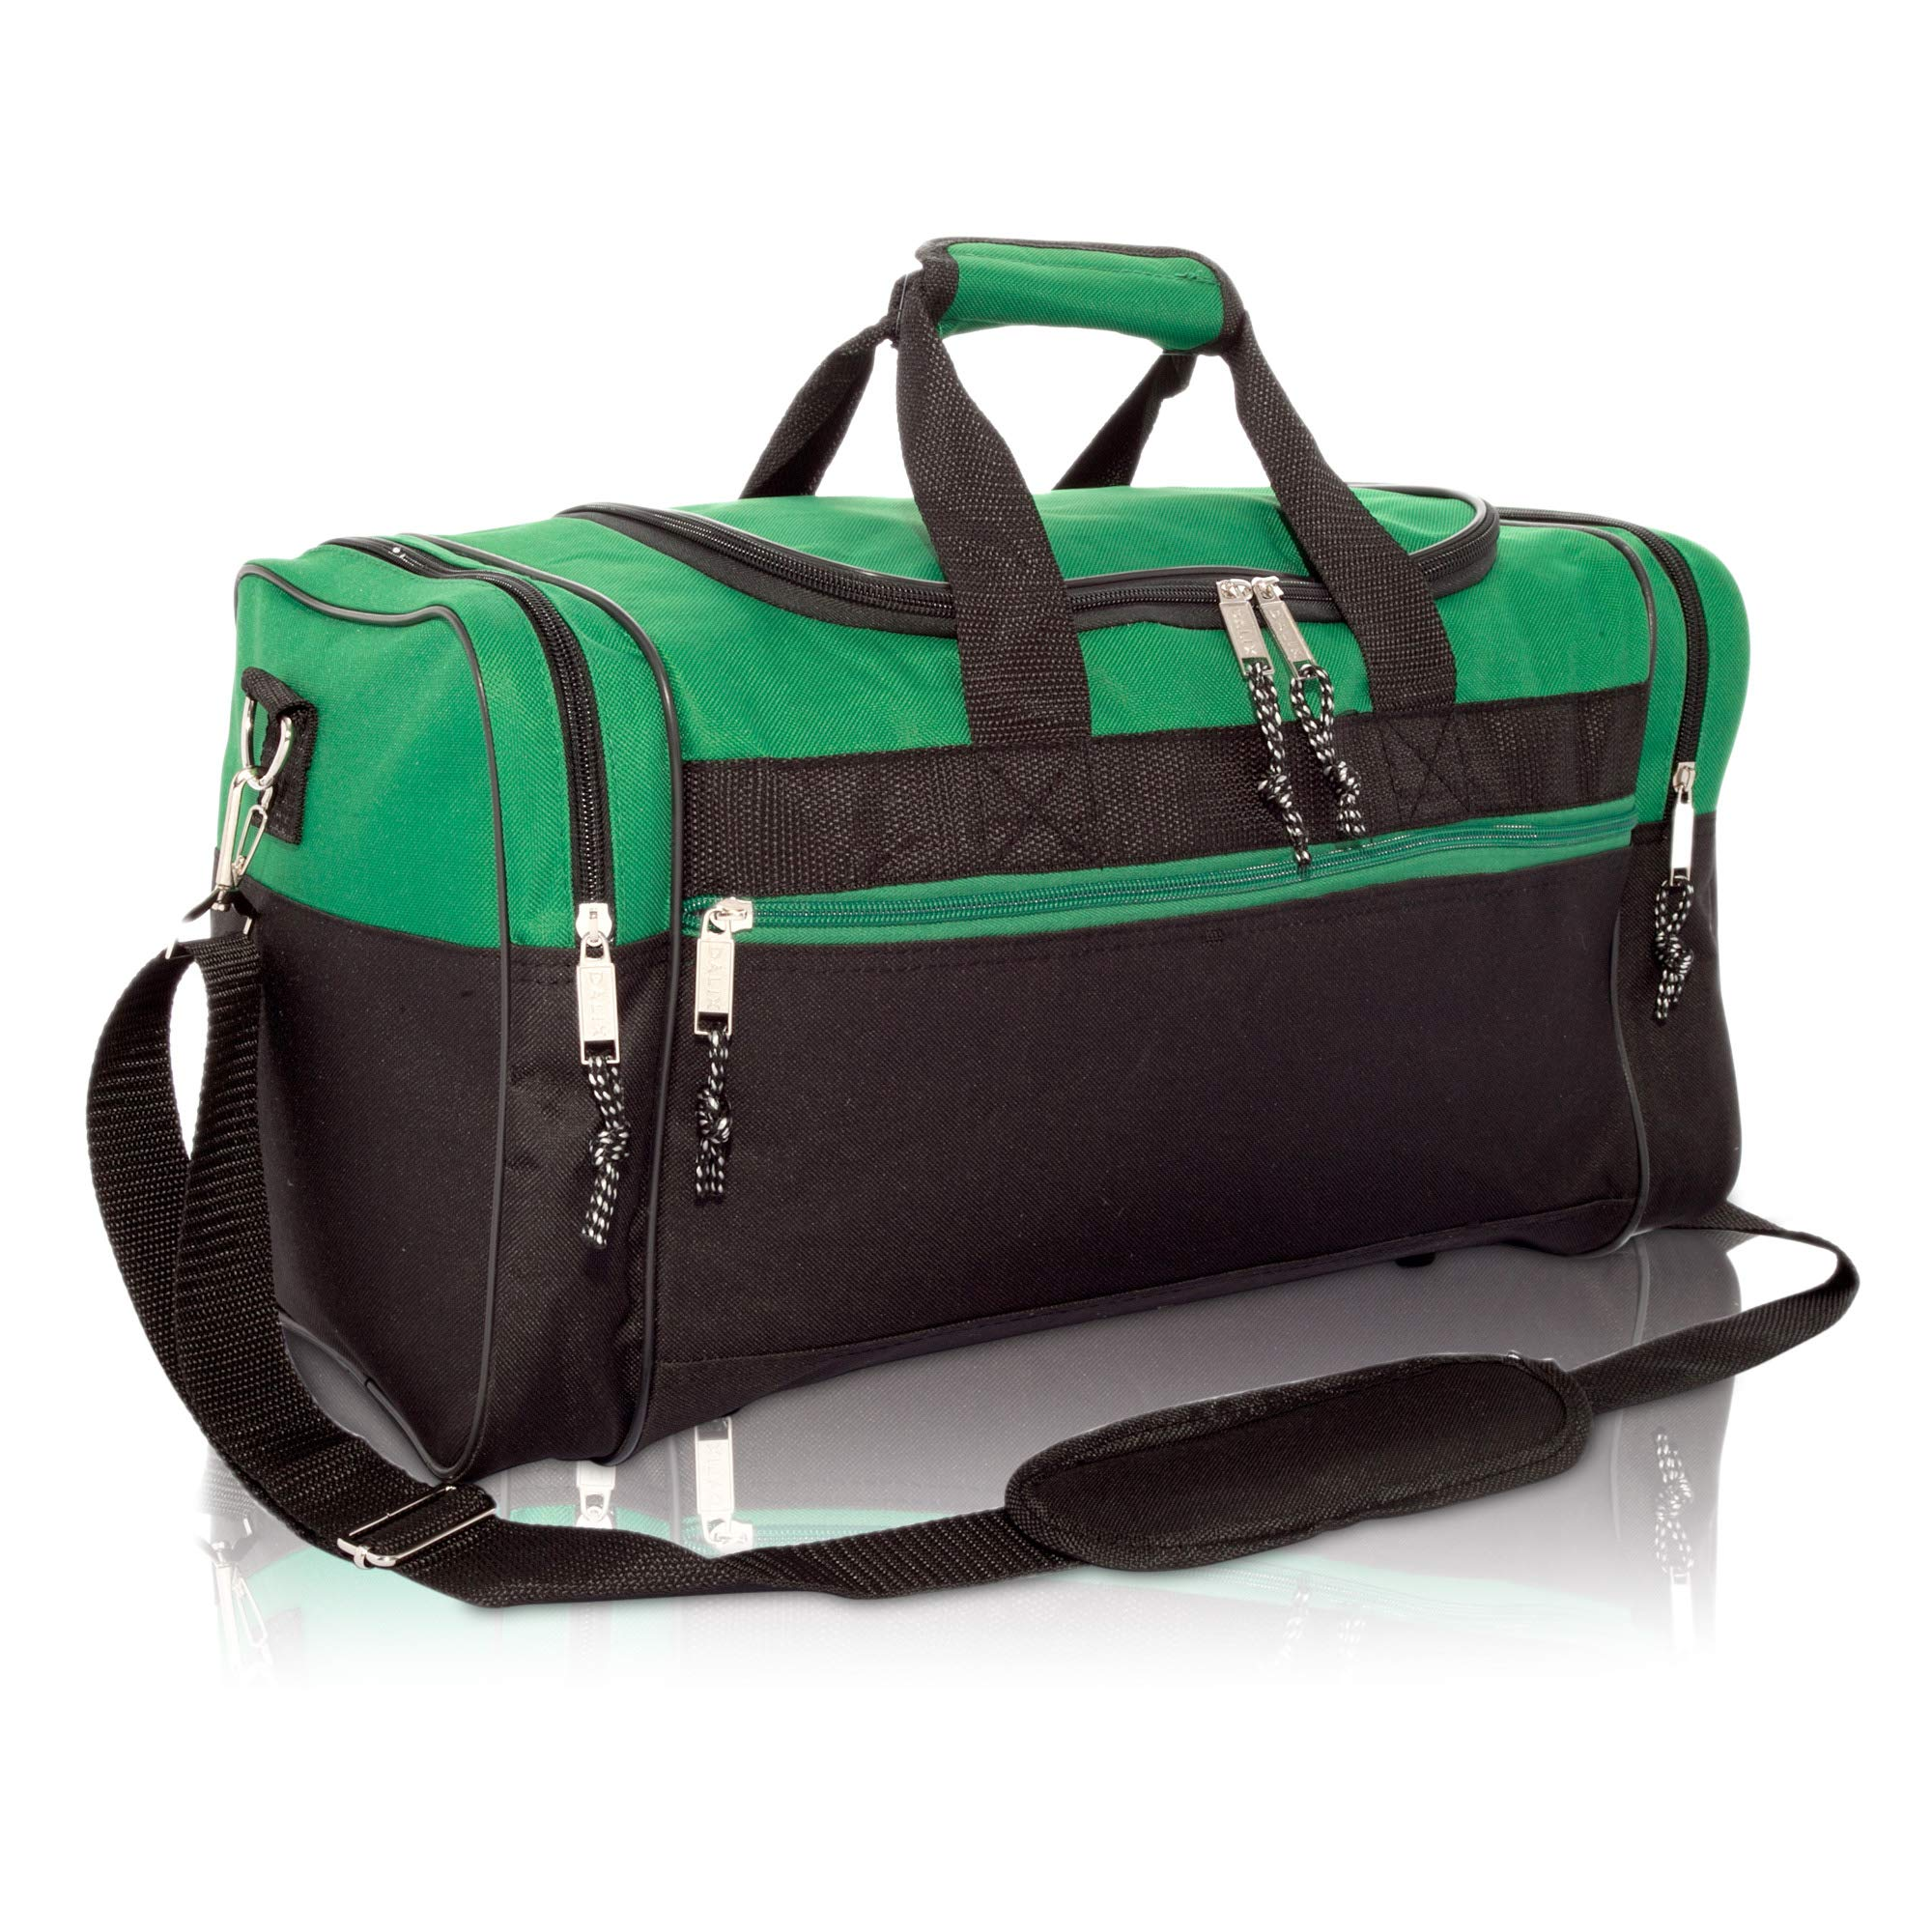 17'' Blank Duffle Bag Duffel Bag Travel Size Sports Durable Gym Bag (Green) by DALIX